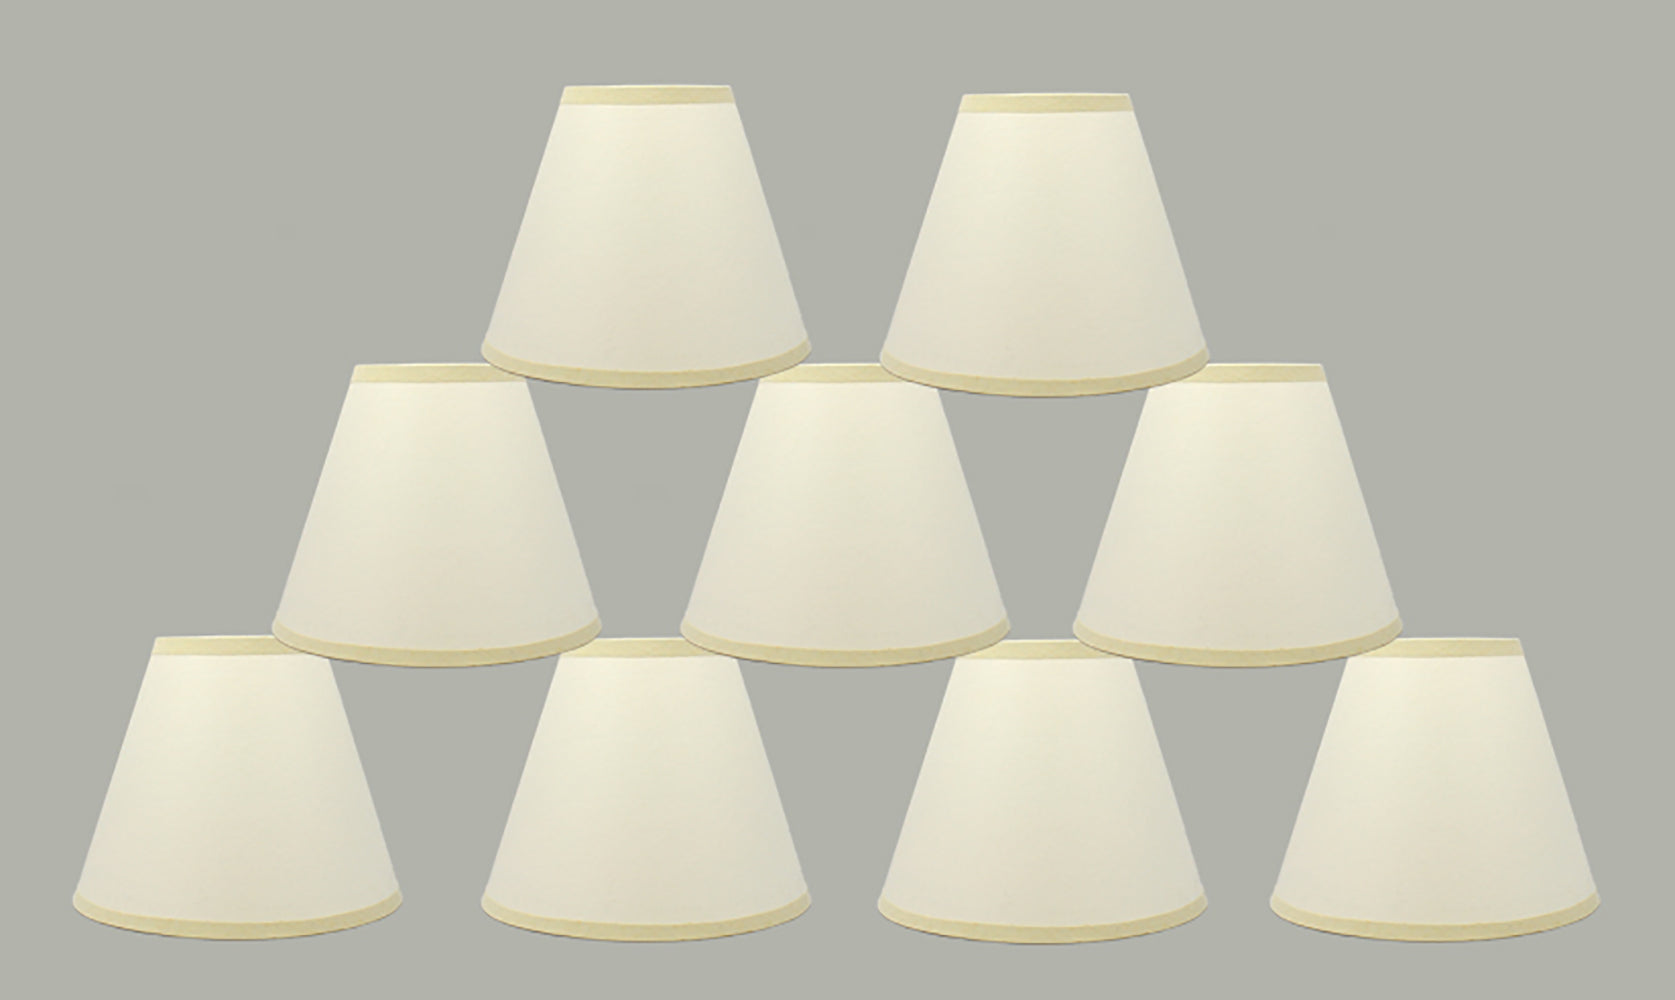 Craft Paper 6-inch Chandelier Lamp Shade - Eggshell